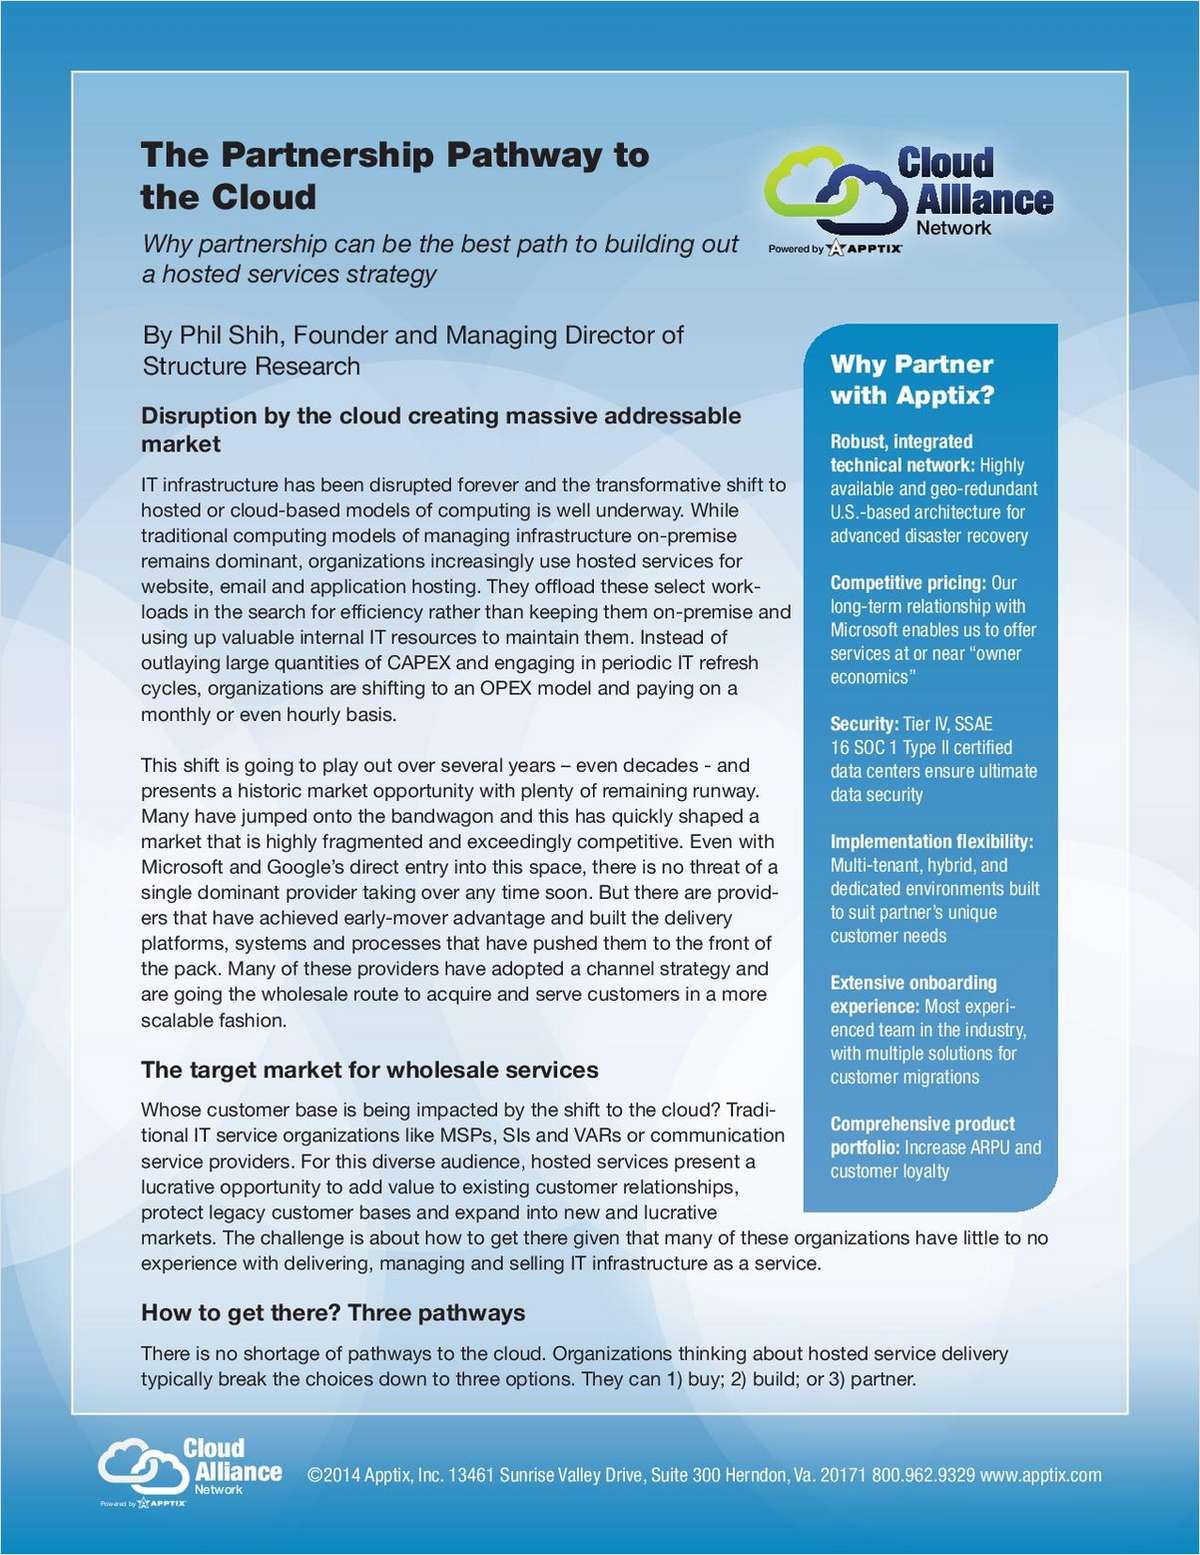 The Partnership Pathway to the Cloud